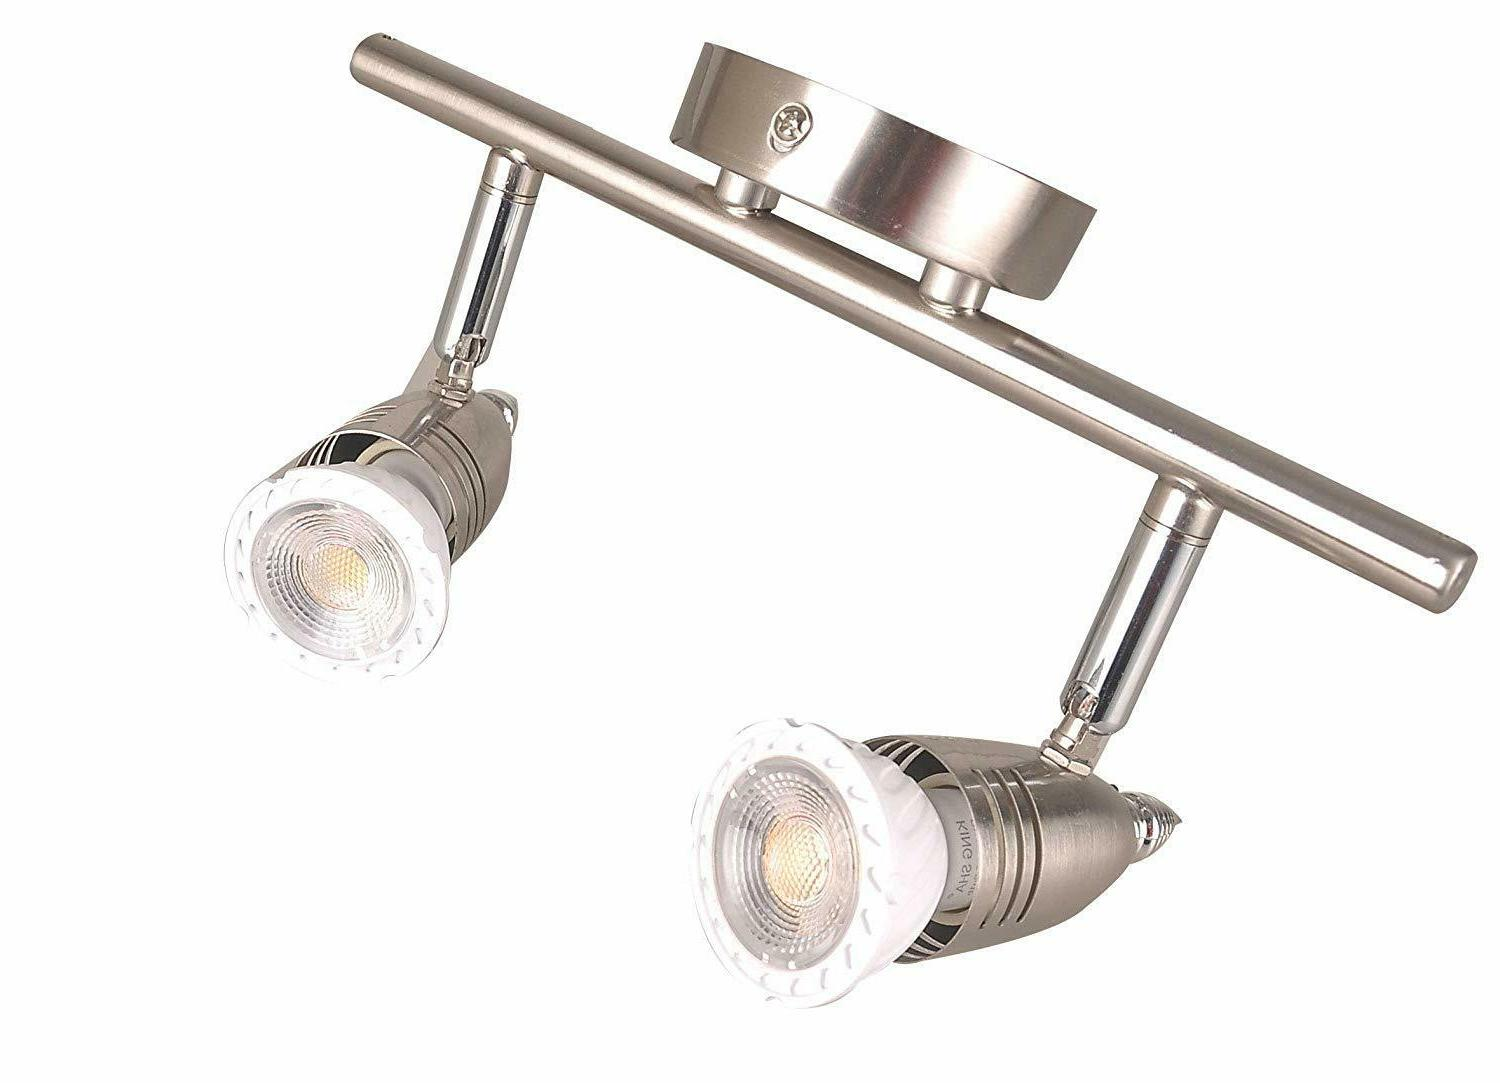 Two-Light Track Lighting Plug in,Brushed On/Off Switch,